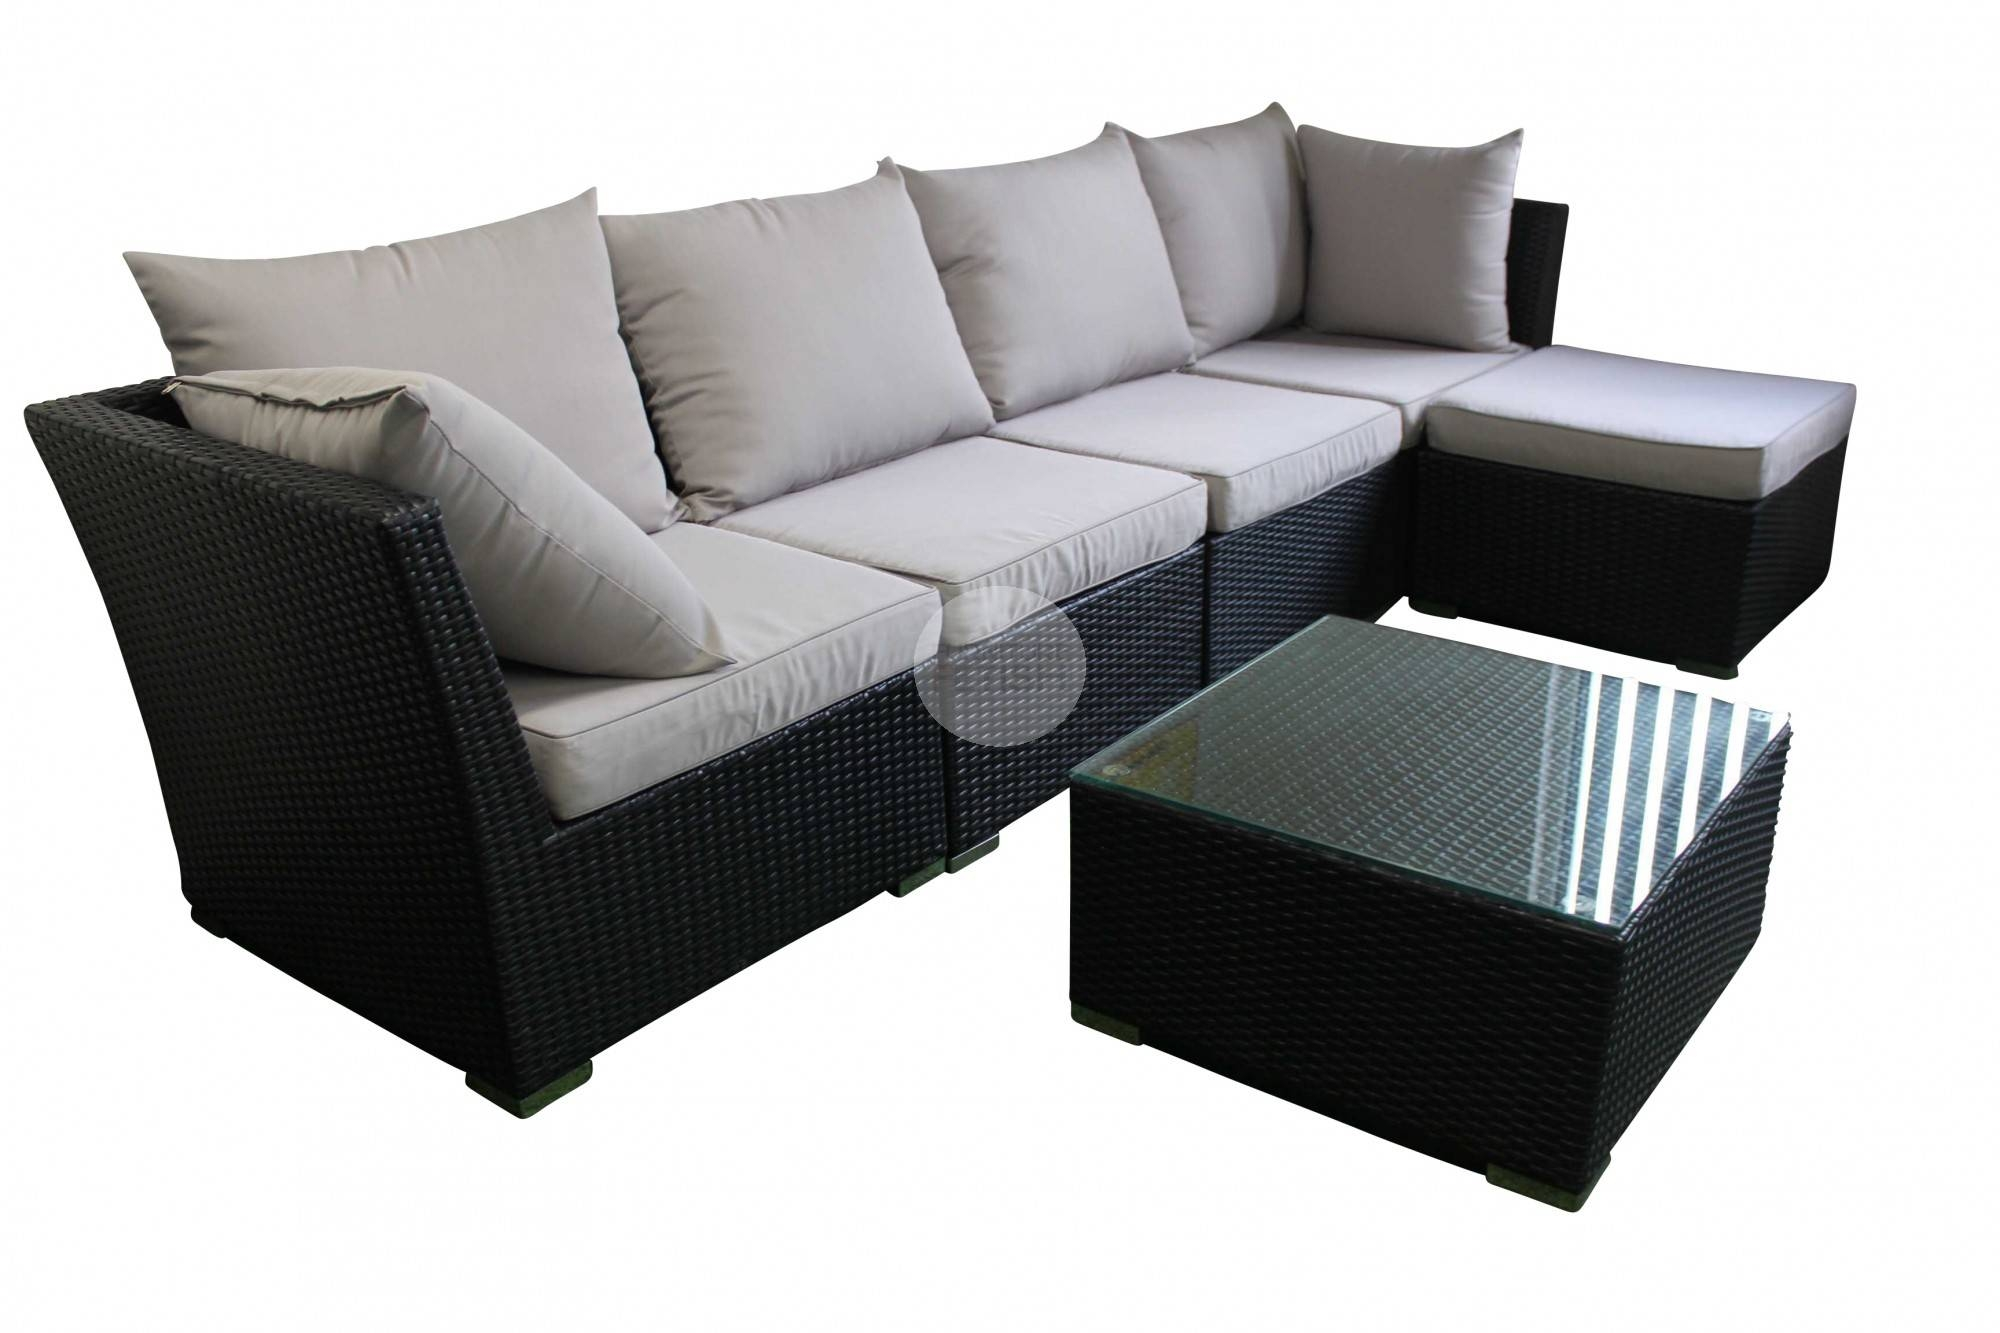 Outdoor Sofa Lounge With Chaise & Coffee Table – Rattan Wicker Throughout Black Wicker Sofas (View 11 of 15)